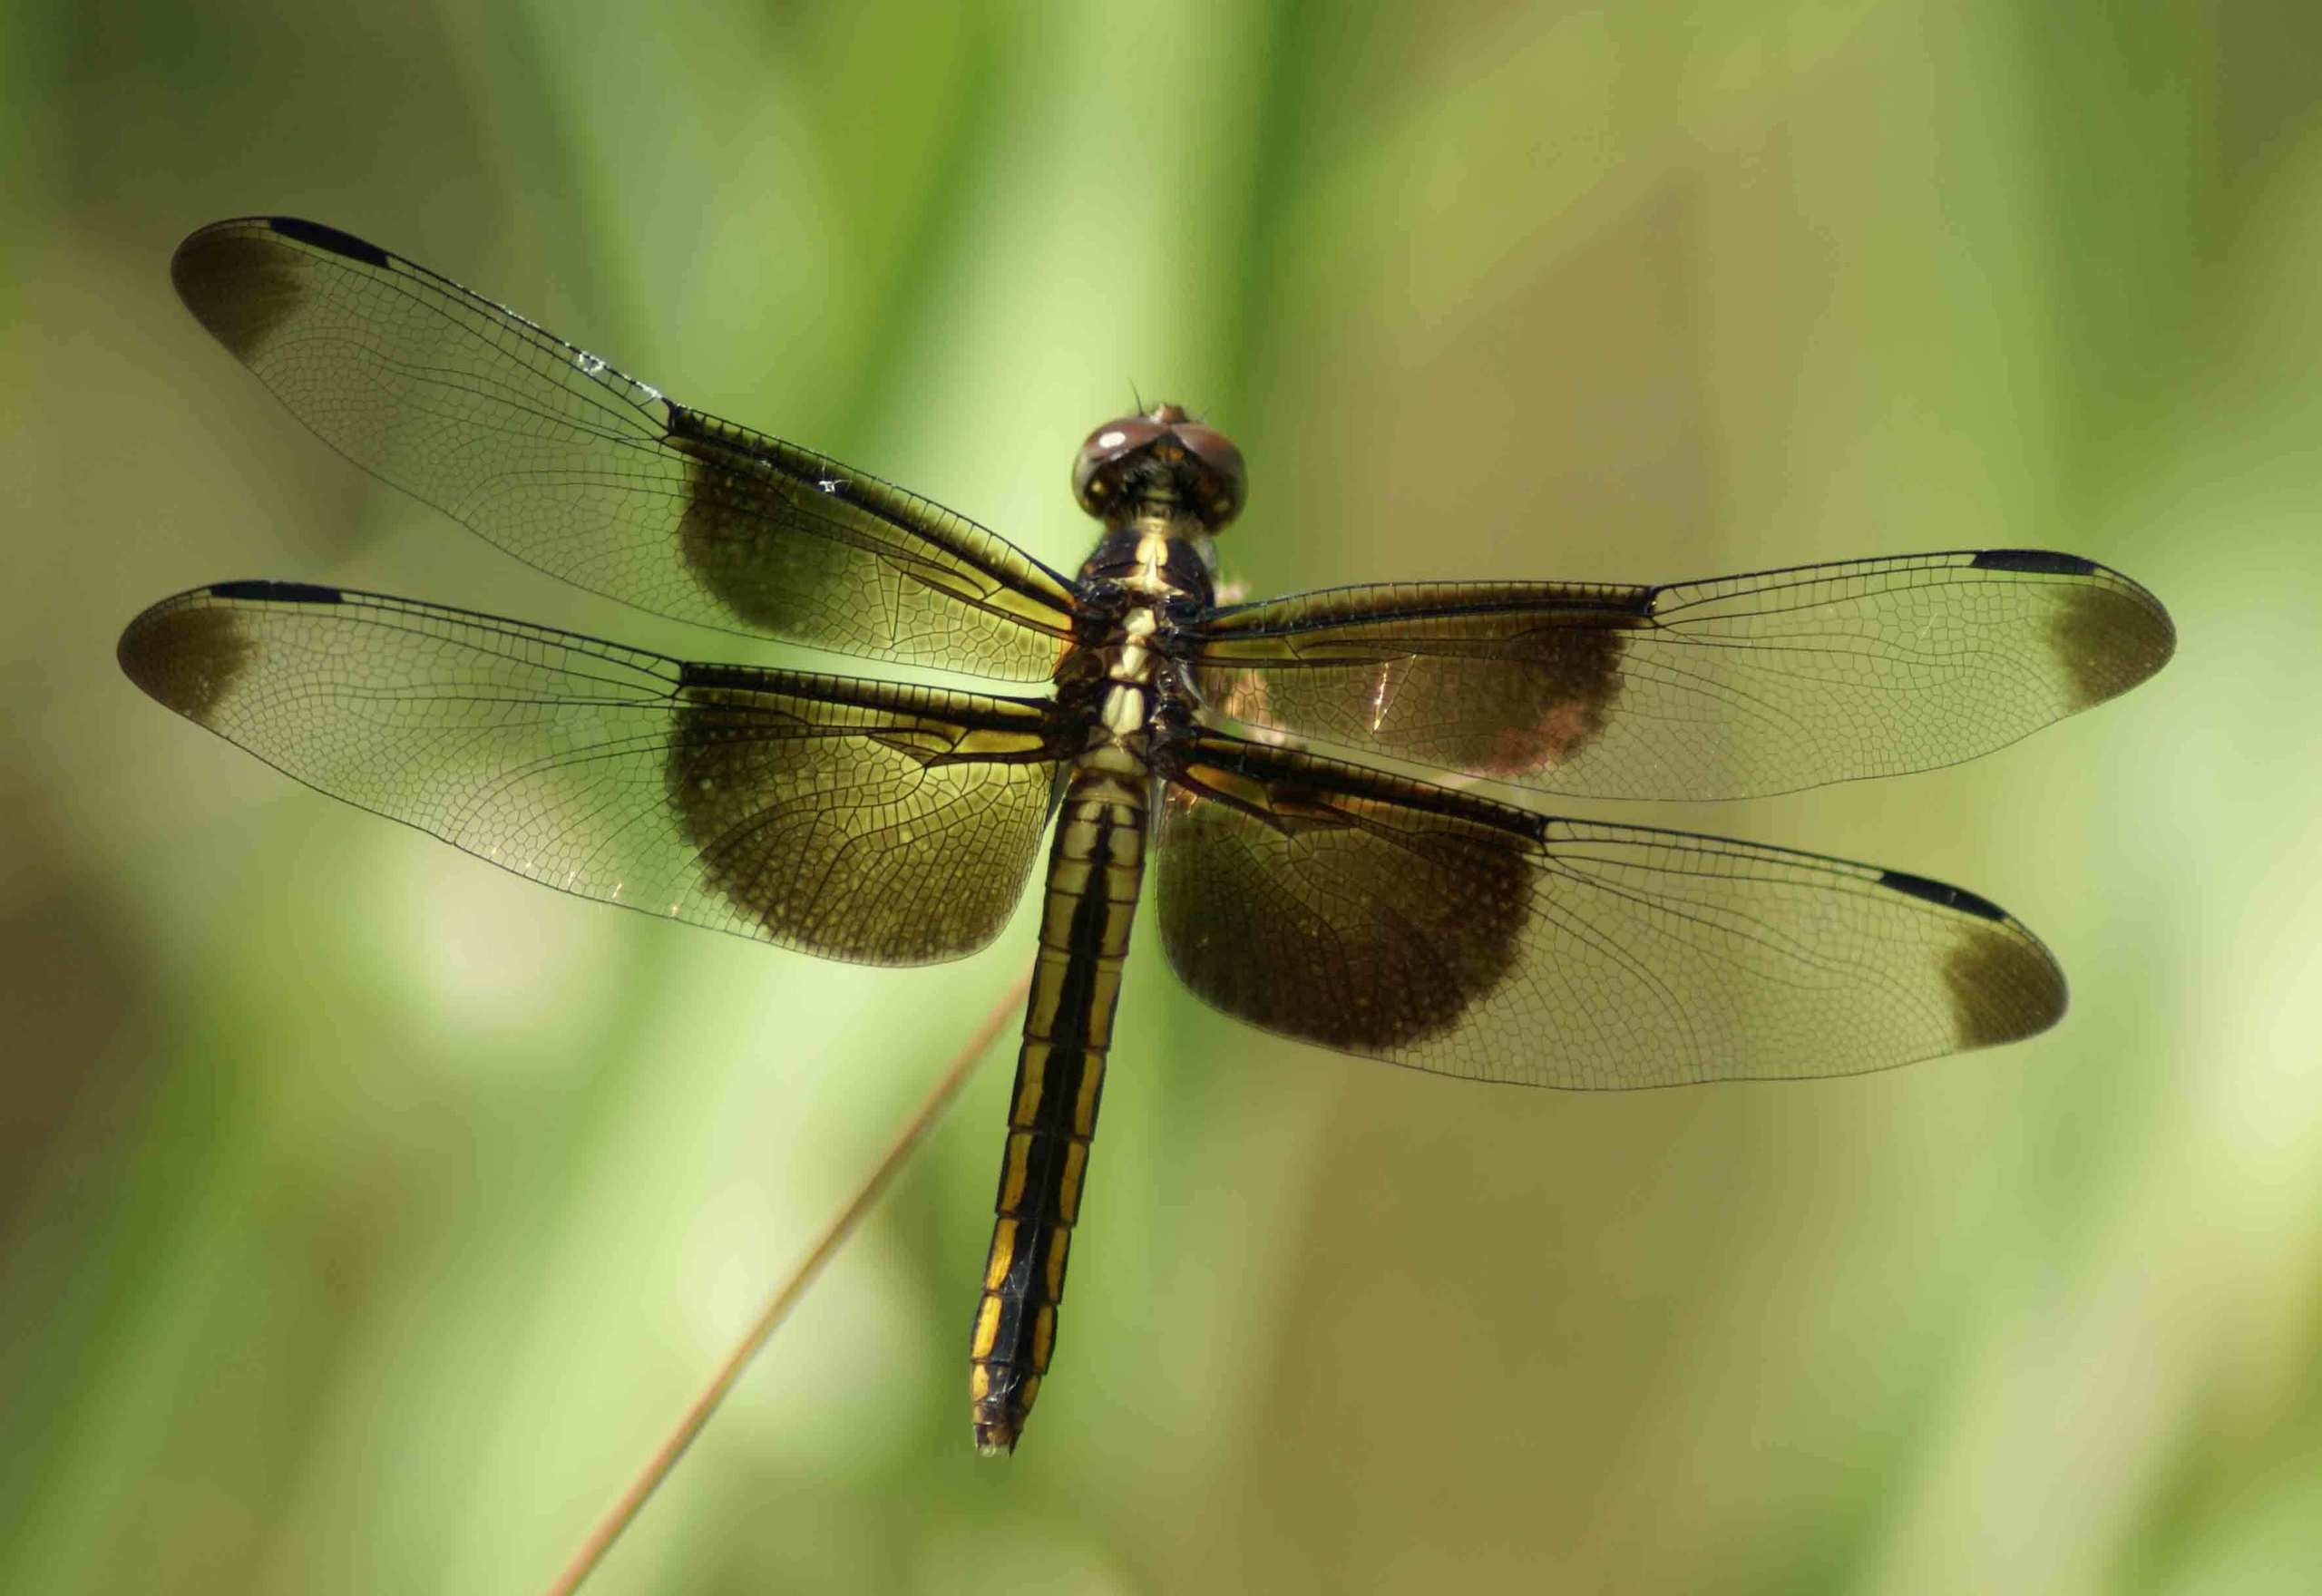 Res: 2560x1760, Dragonfly - Dragonflies Photo (22412607) - Fanpop